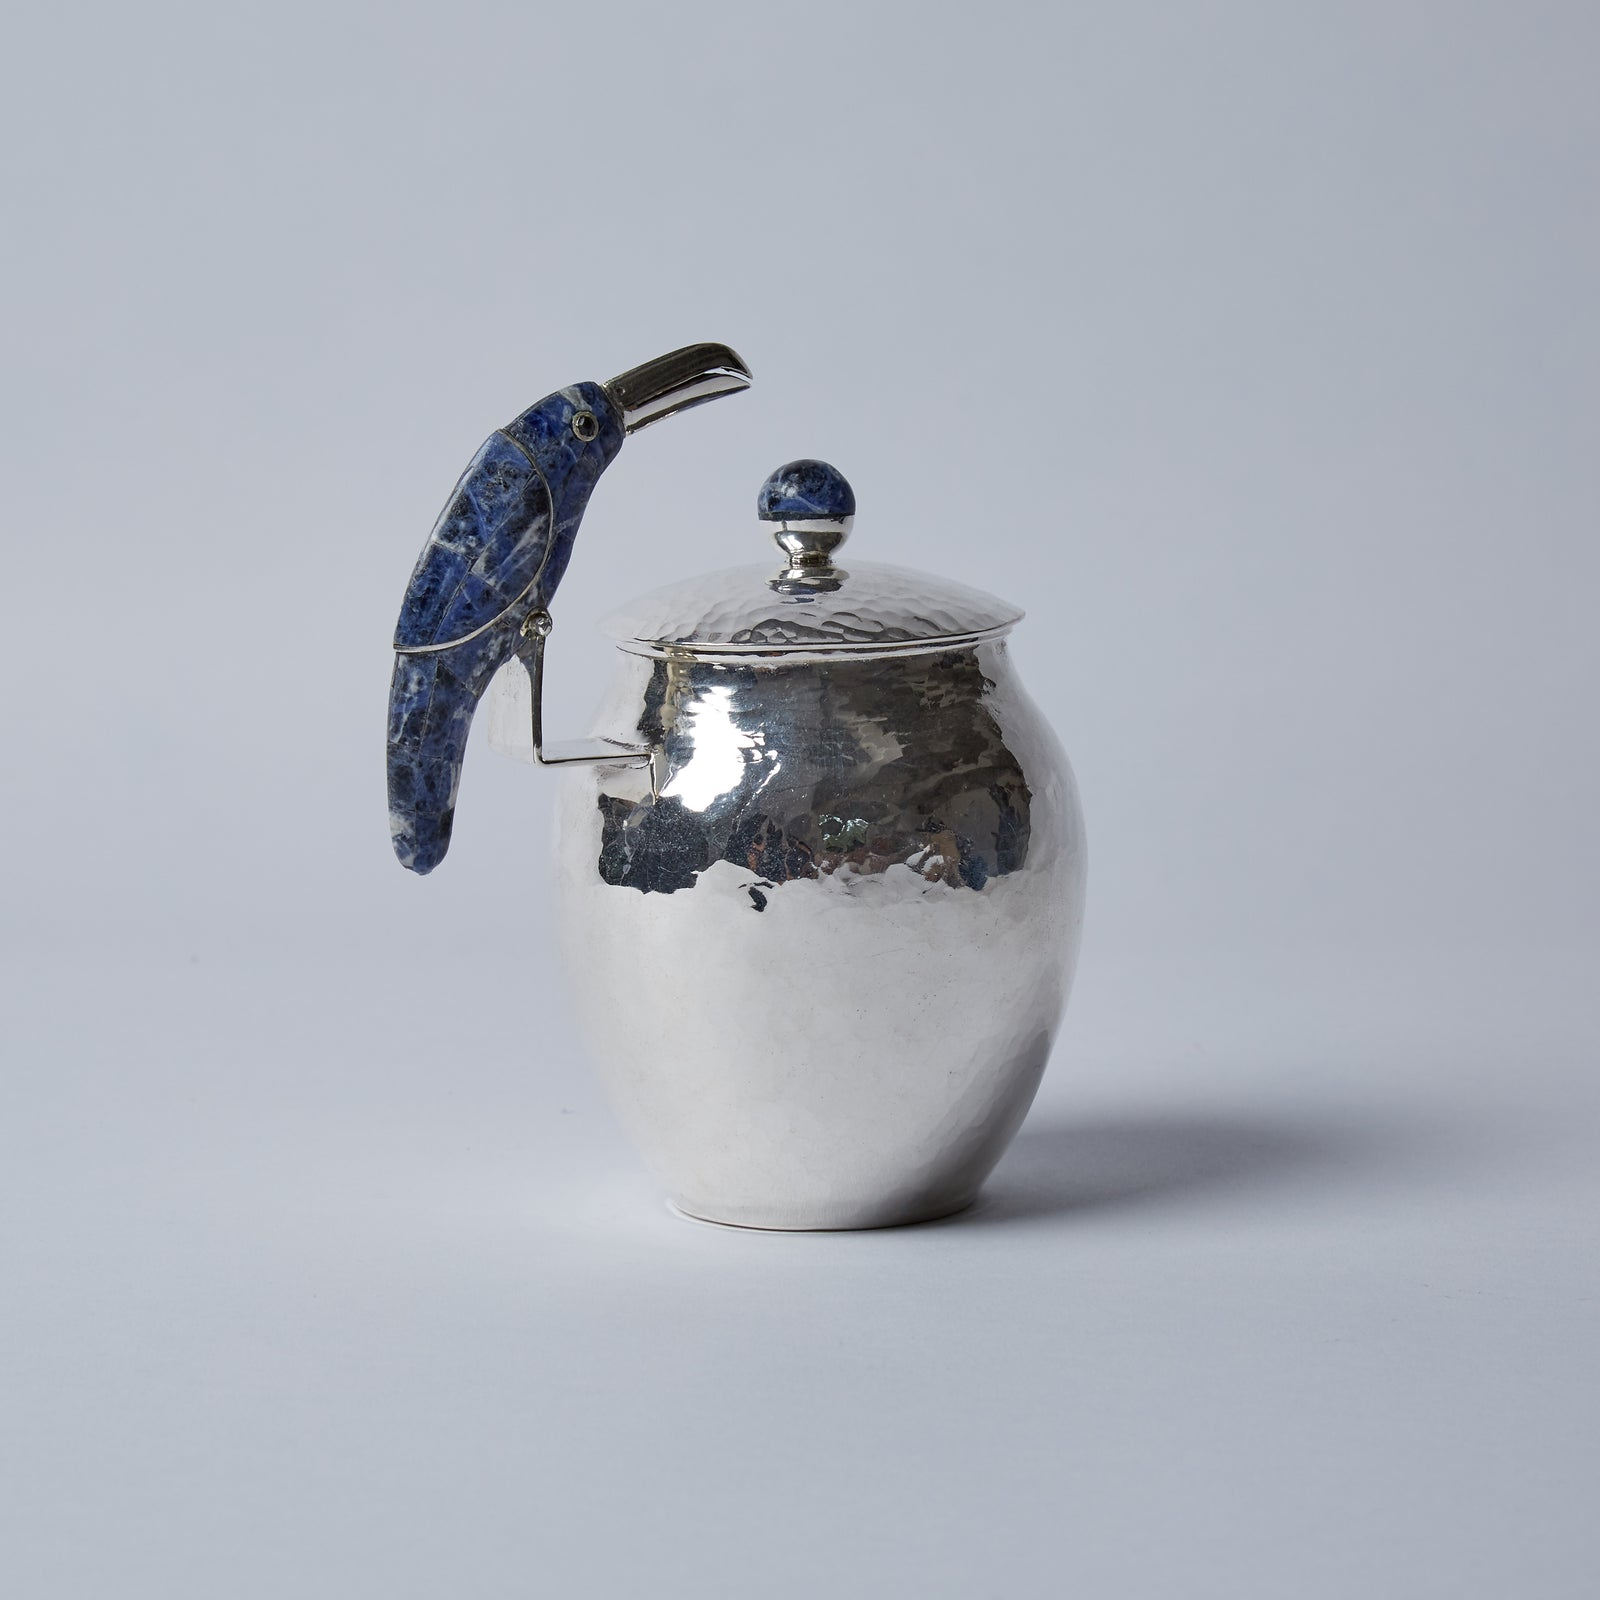 This mischievous Toucan, mosaicked in Lapis Lazuli, is wondering if he can dip his elegant beak into the pot when you are not looking.